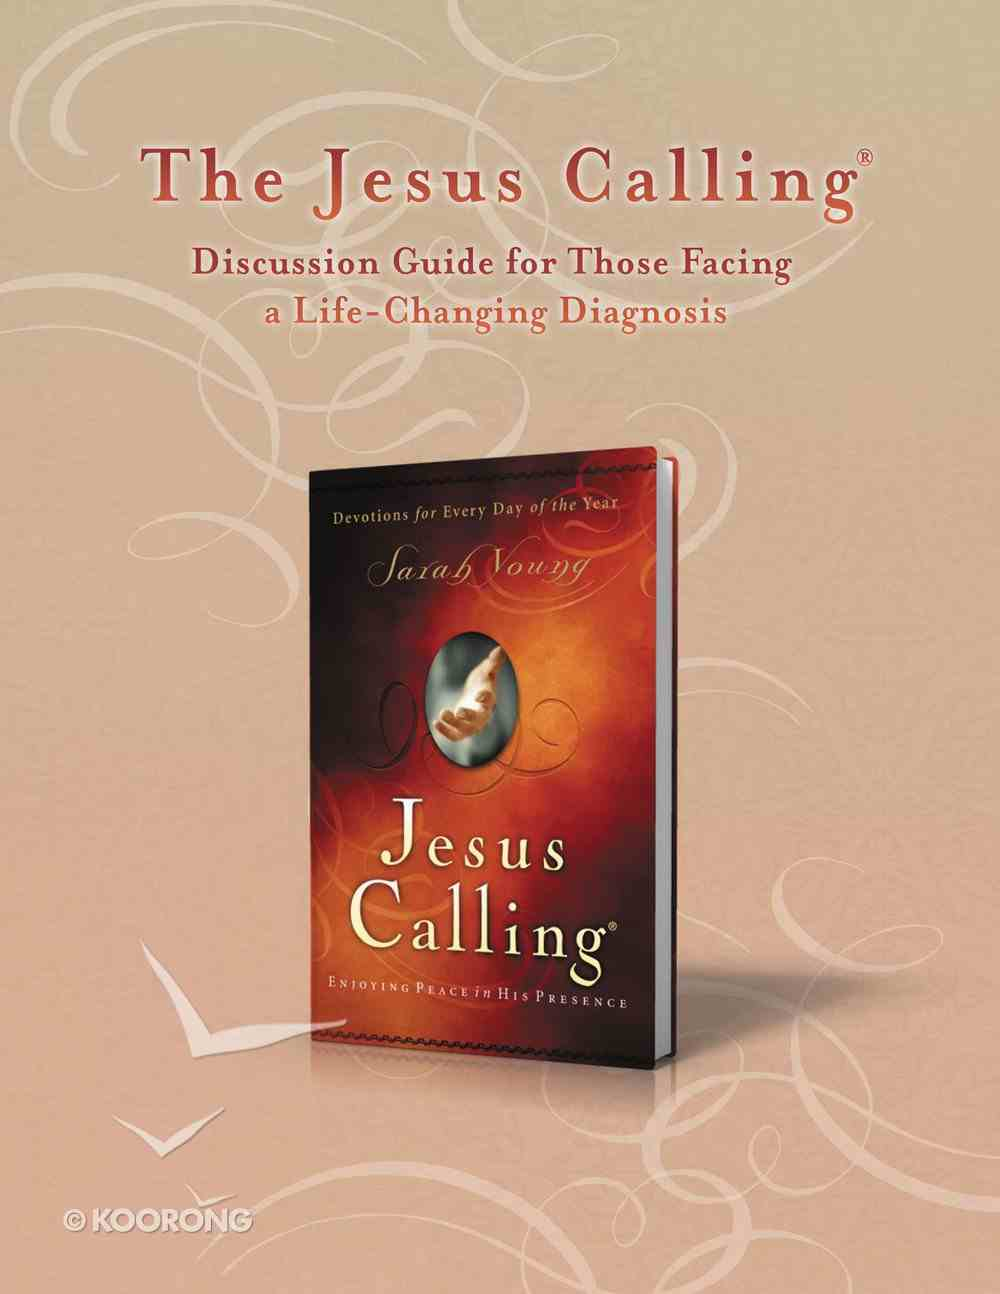 The Jesus Calling Discussion Guide For Those Facing a Life-Changing Diagnosis eBook